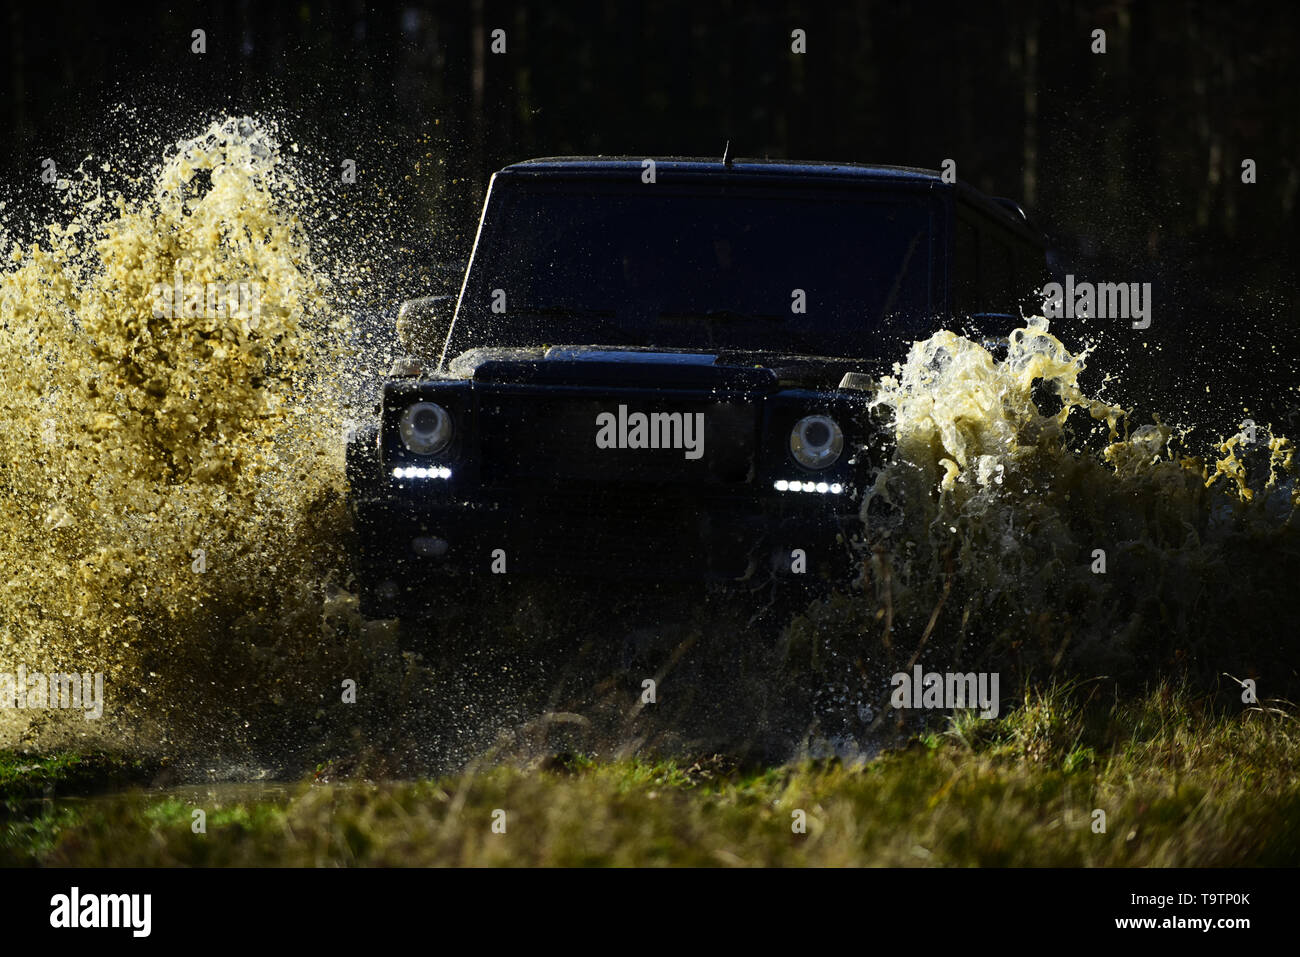 Offroad race on fall nature background. Extreme, challenge and 4x4 vehicle concept. SUV or offroad car on path covered with grass crossing puddle with - Stock Image